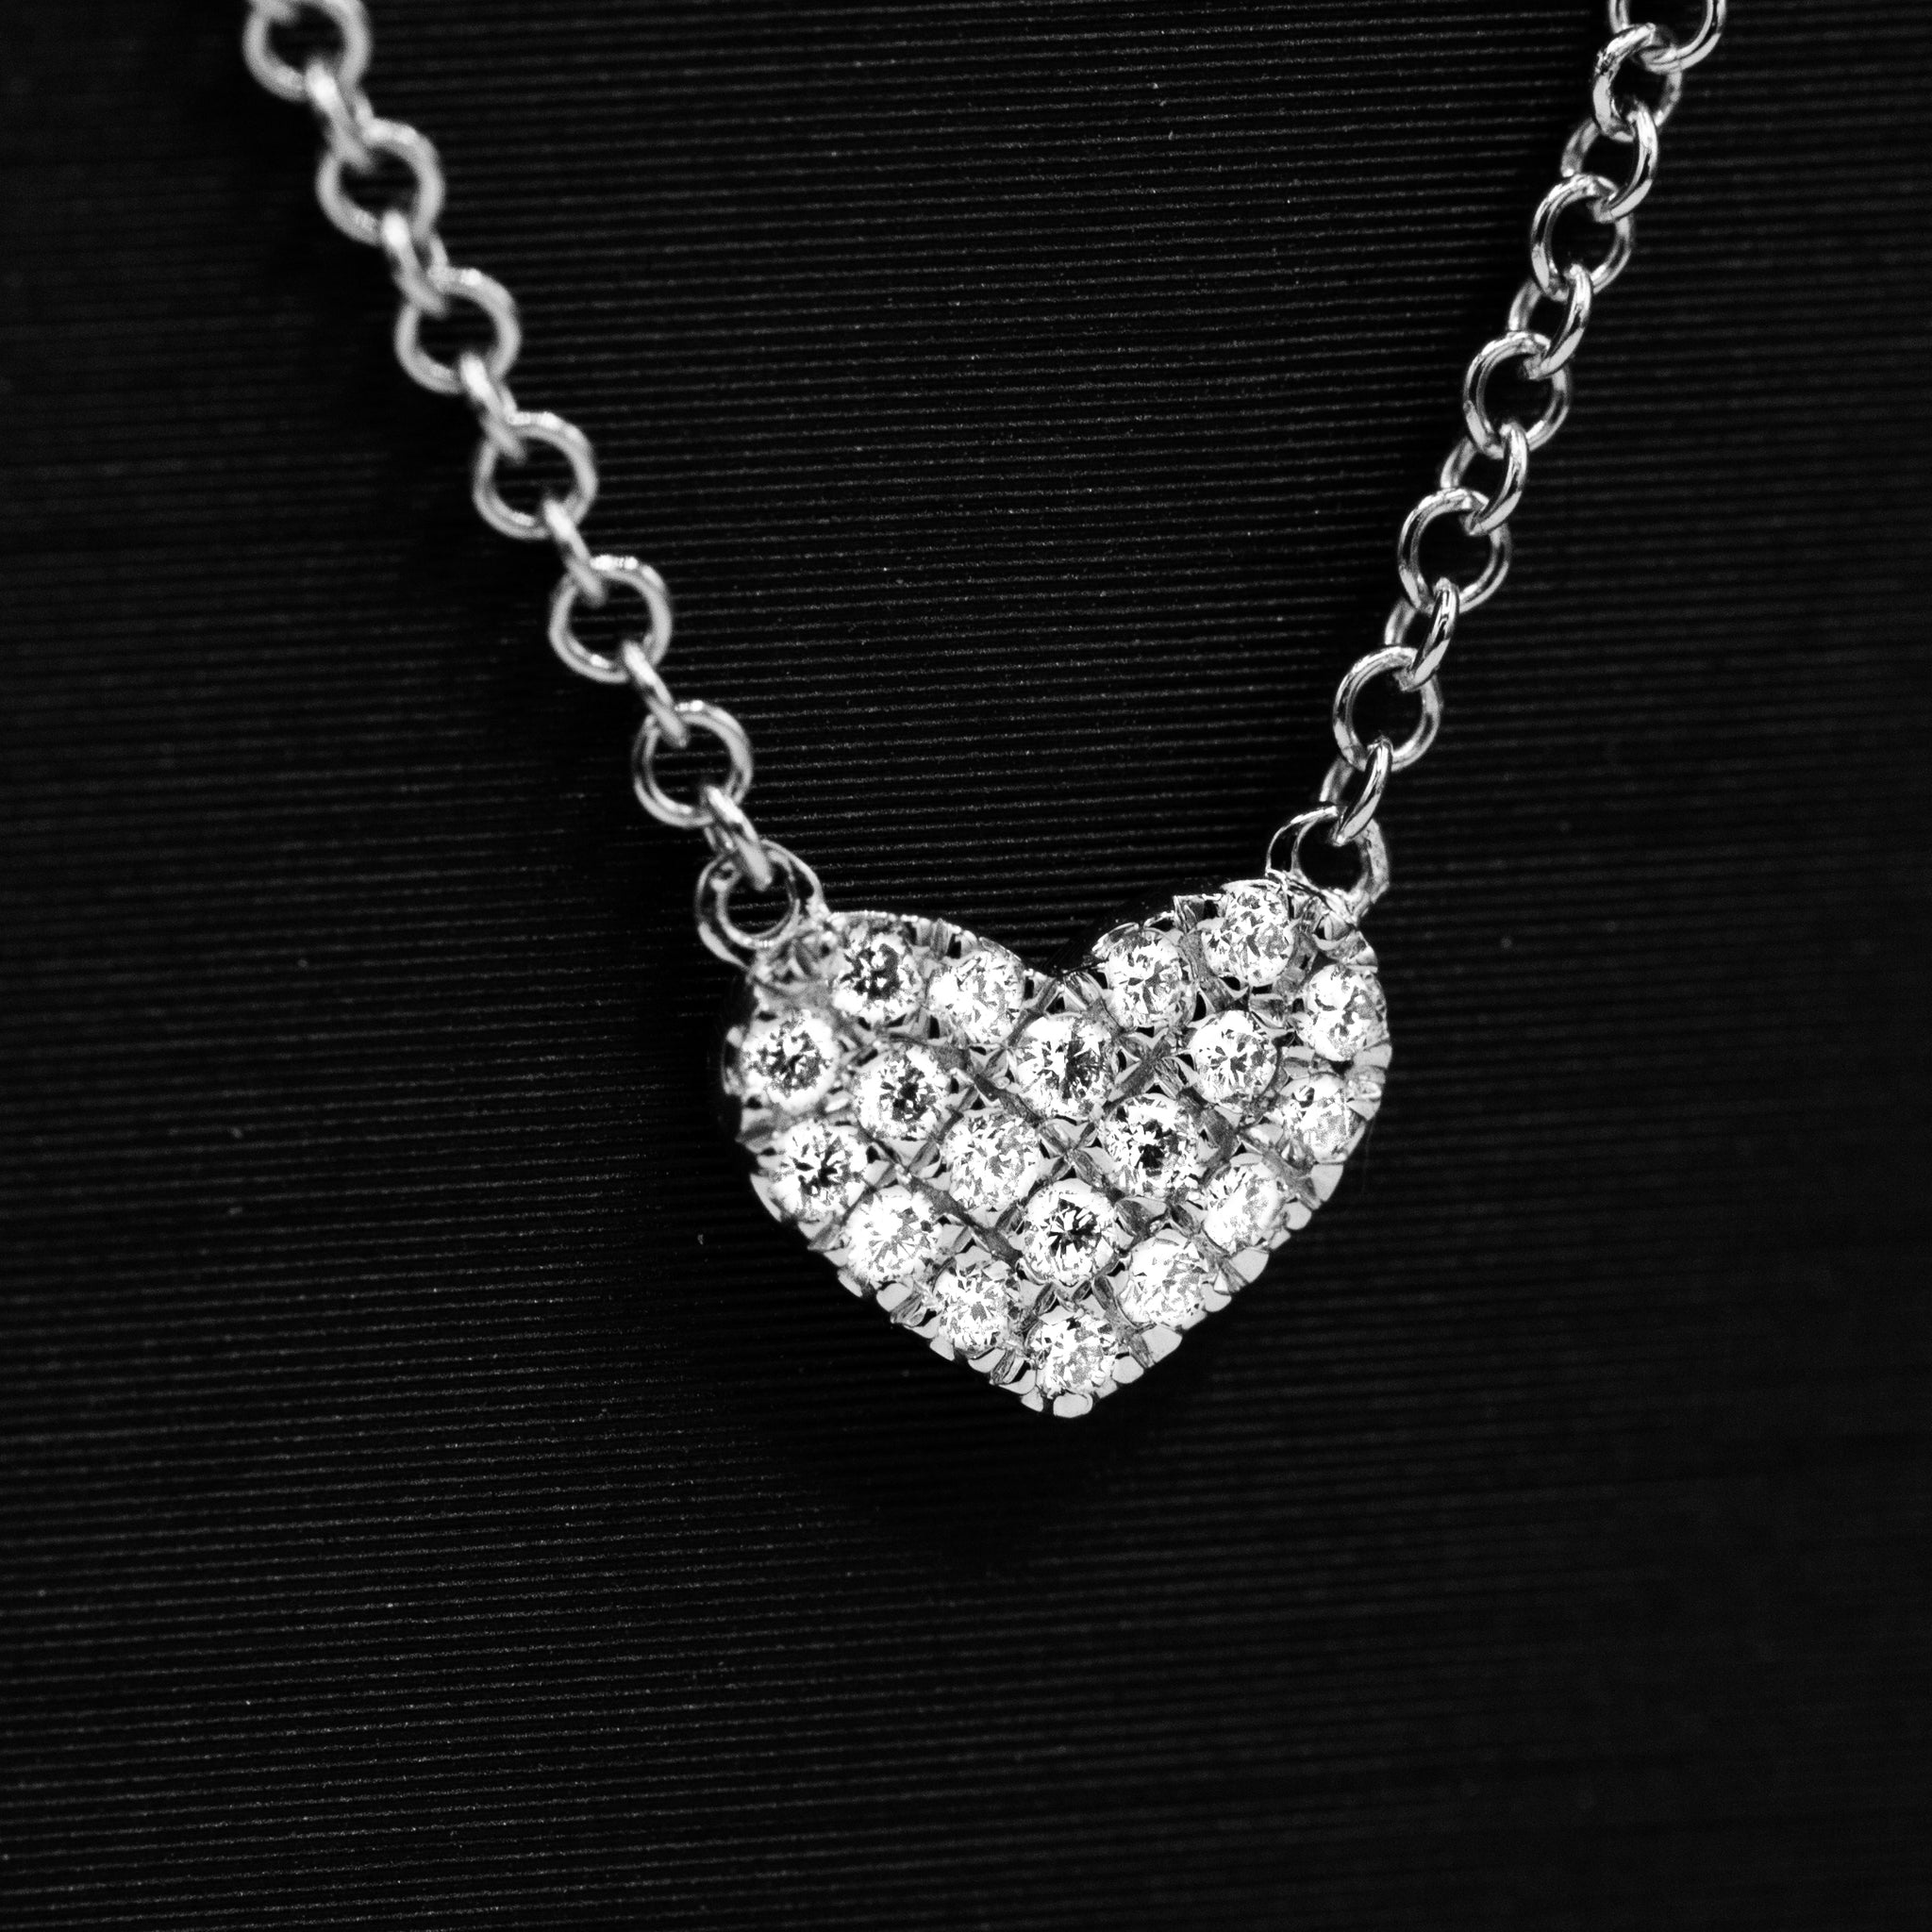 "Adoring 14K White Gold Diamond Heart Eternal Love Pendant Necklace with 17.5"" Chain"